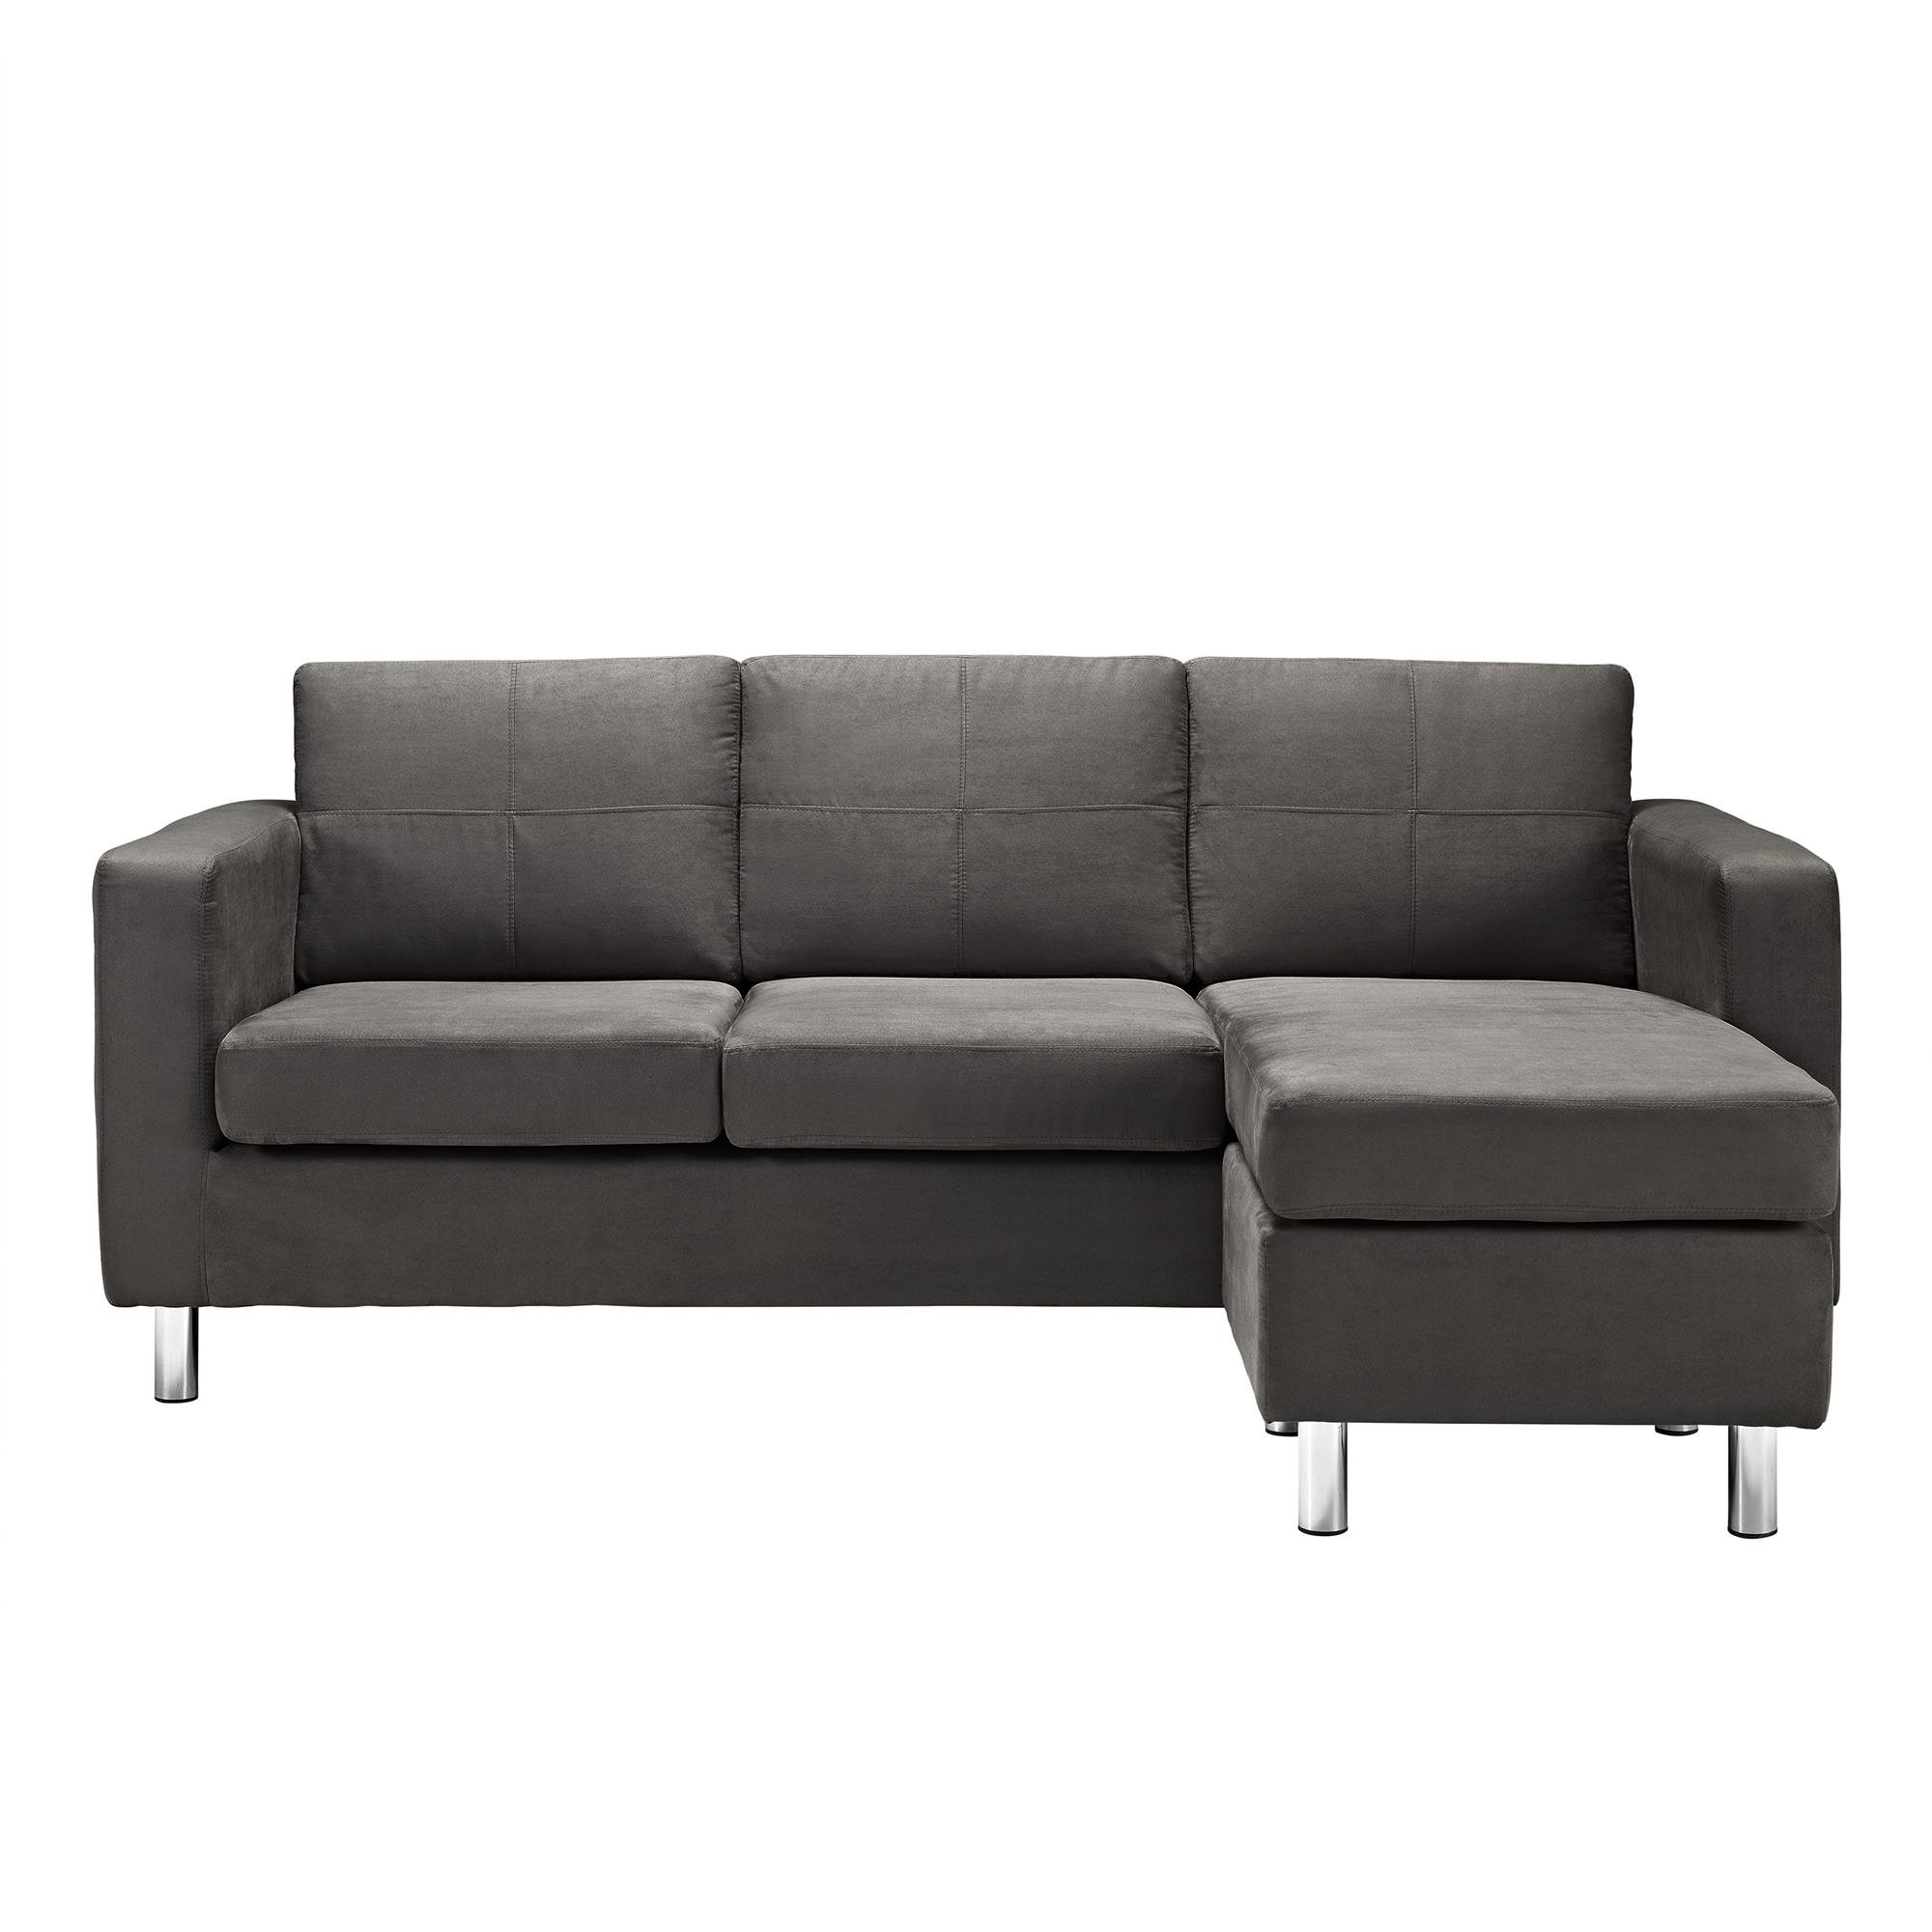 Dorel Living Small Spaces Configurable Sectional Sofa: Small Sectional Sofa With Chaise: Amazon.com